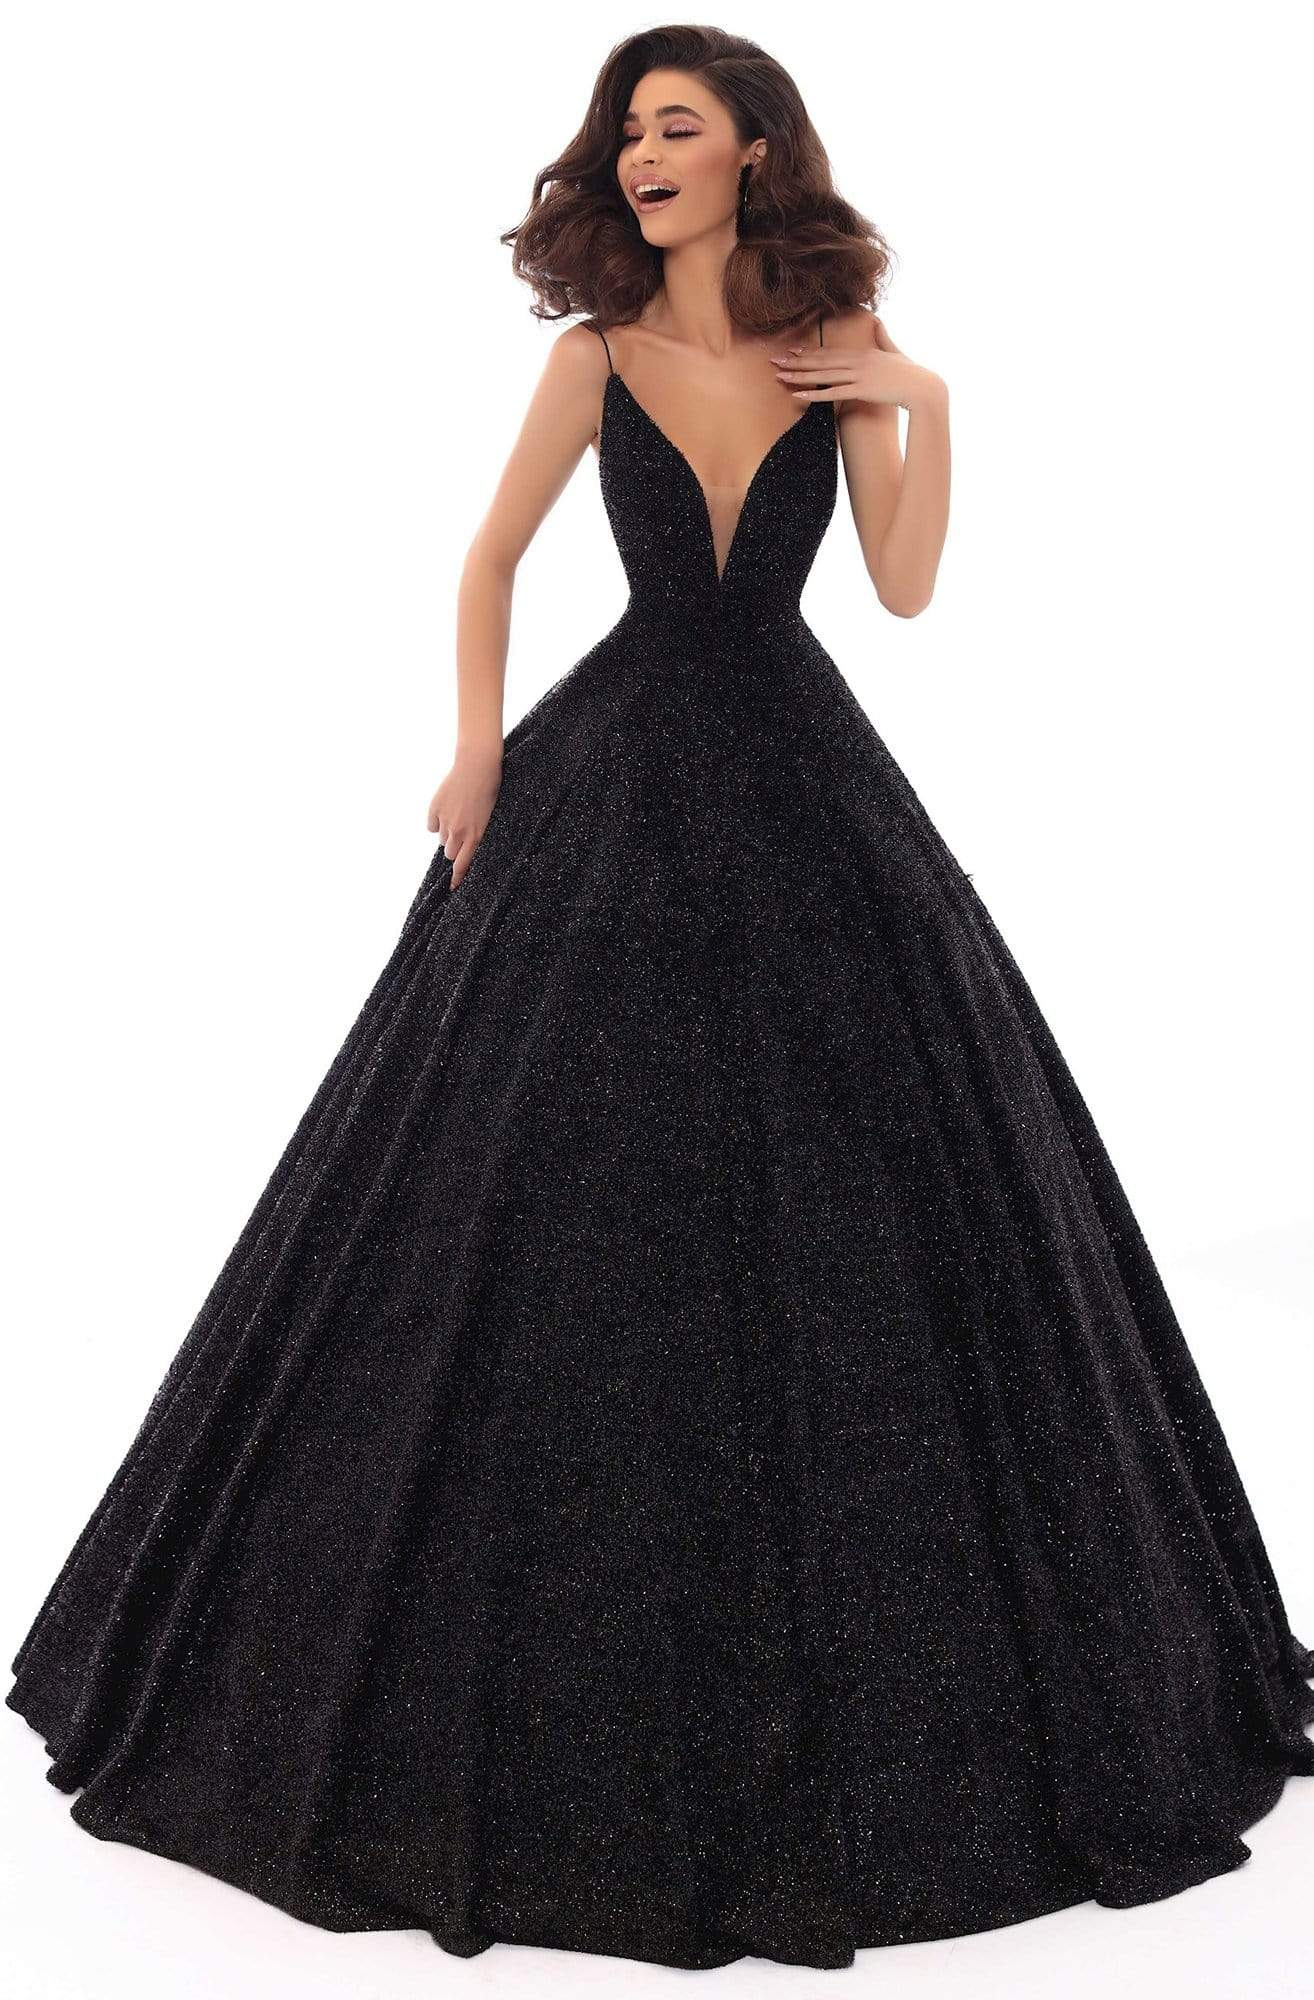 Tarik Ediz - 93690 Illusion Plunging Backless Sparkly Ballgown Special Occasion Dress 2 / Black